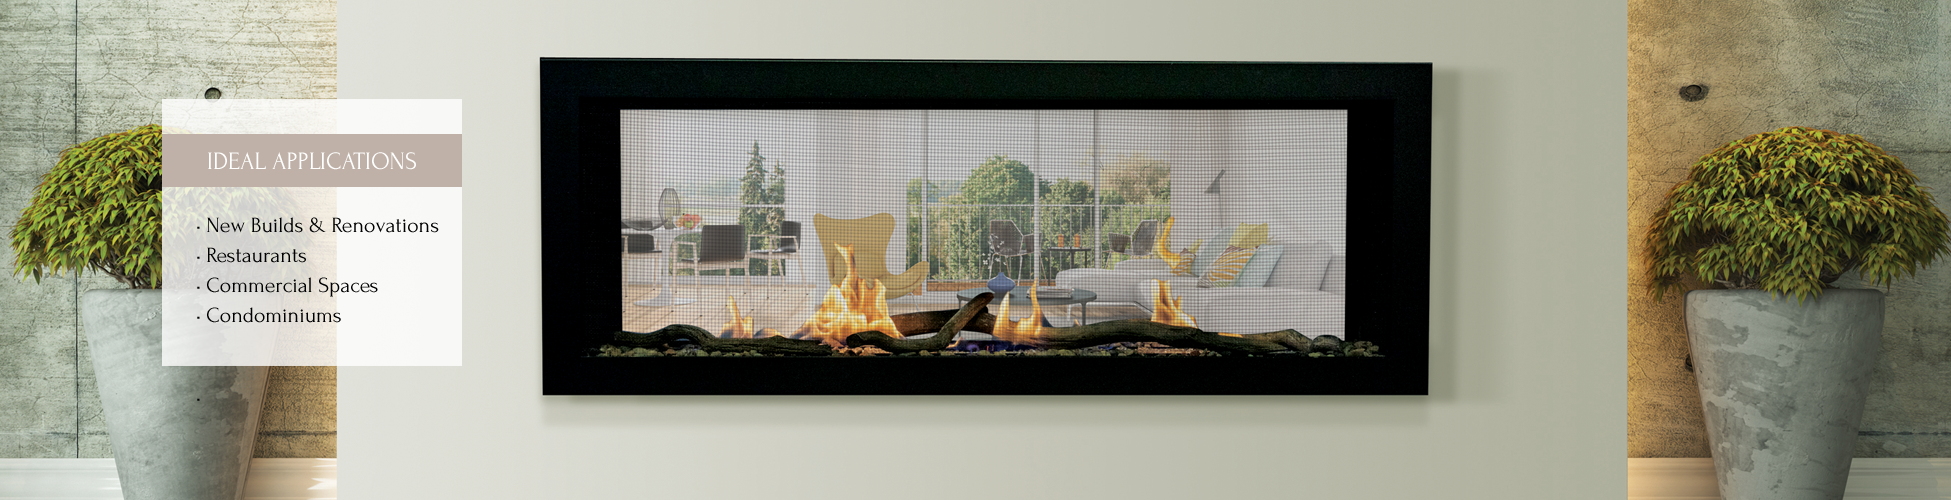 Emerson gas fireplace by Sierra Flame